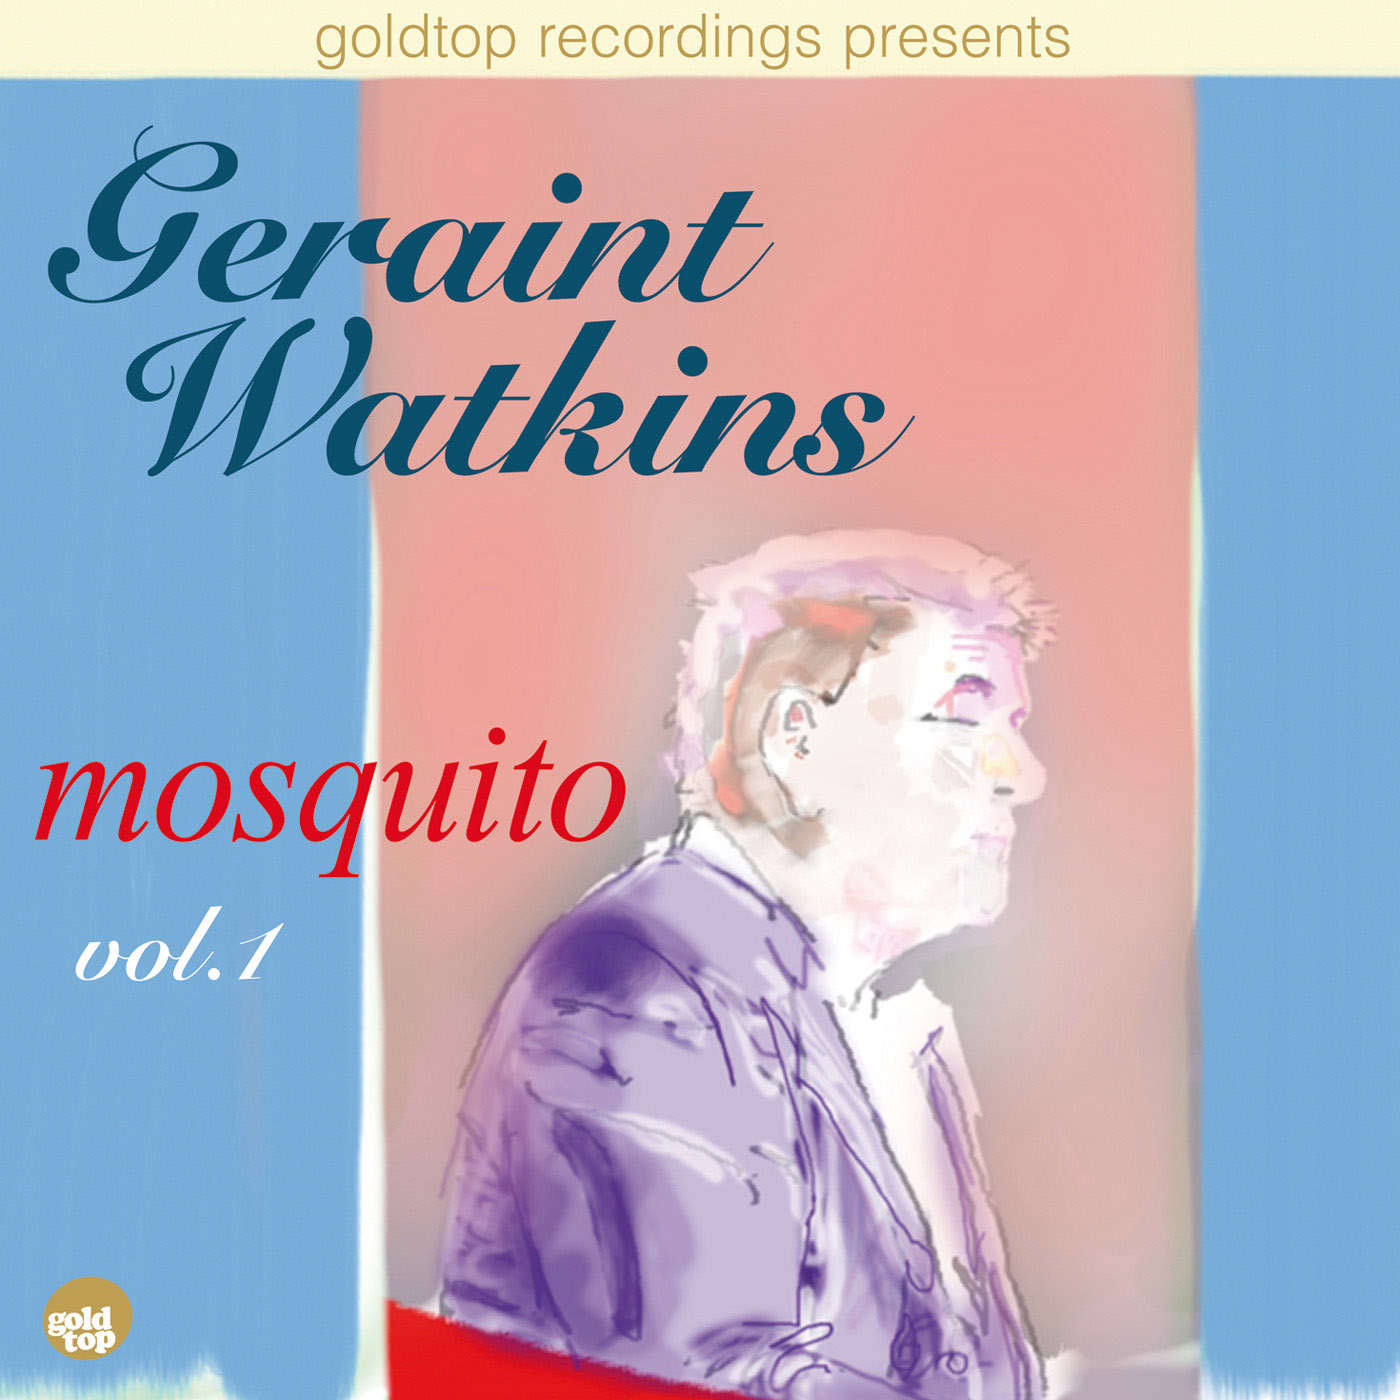 Geraint Watkins Mosquito vol. 1 cover